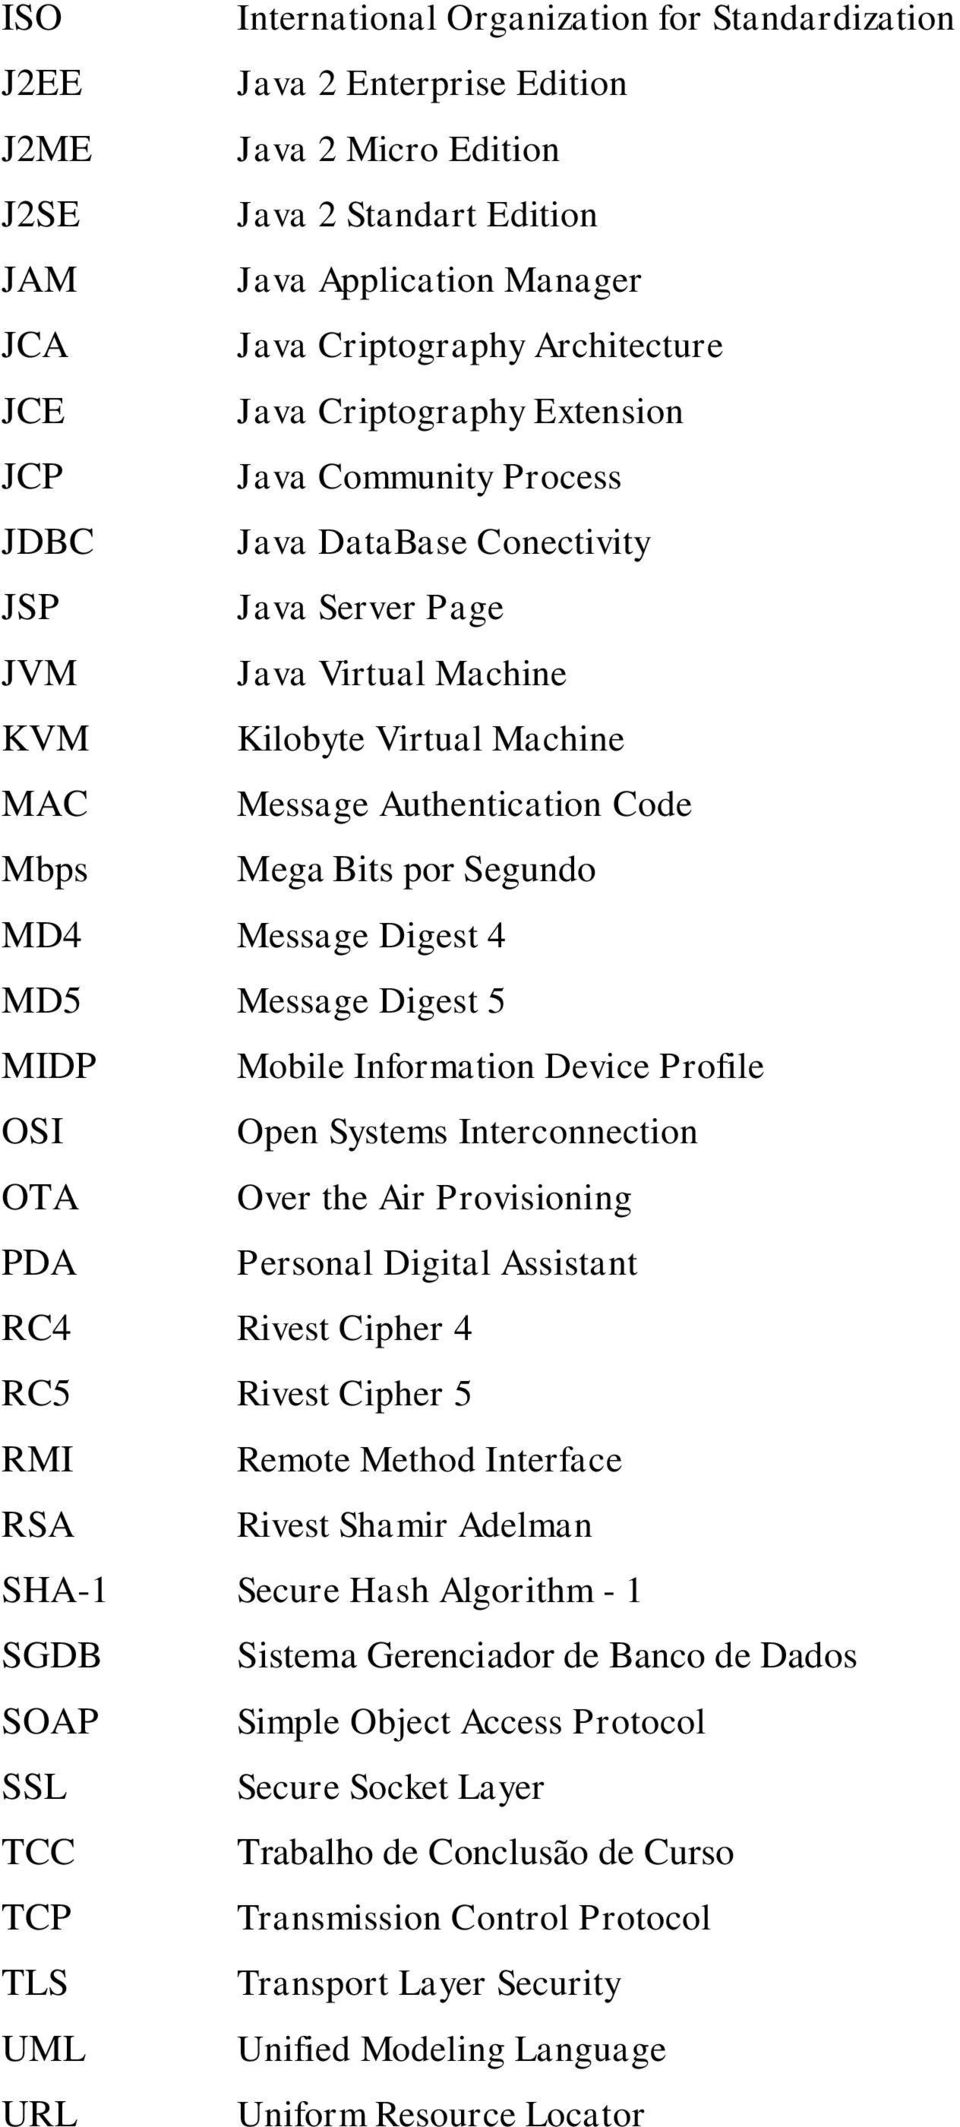 Authentication Code Mbps Mega Bits por Segundo MD4 Message Digest 4 MD5 Message Digest 5 MIDP Mobile Information Device Profile OSI Open Systems Interconnection OTA Over the Air Provisioning PDA